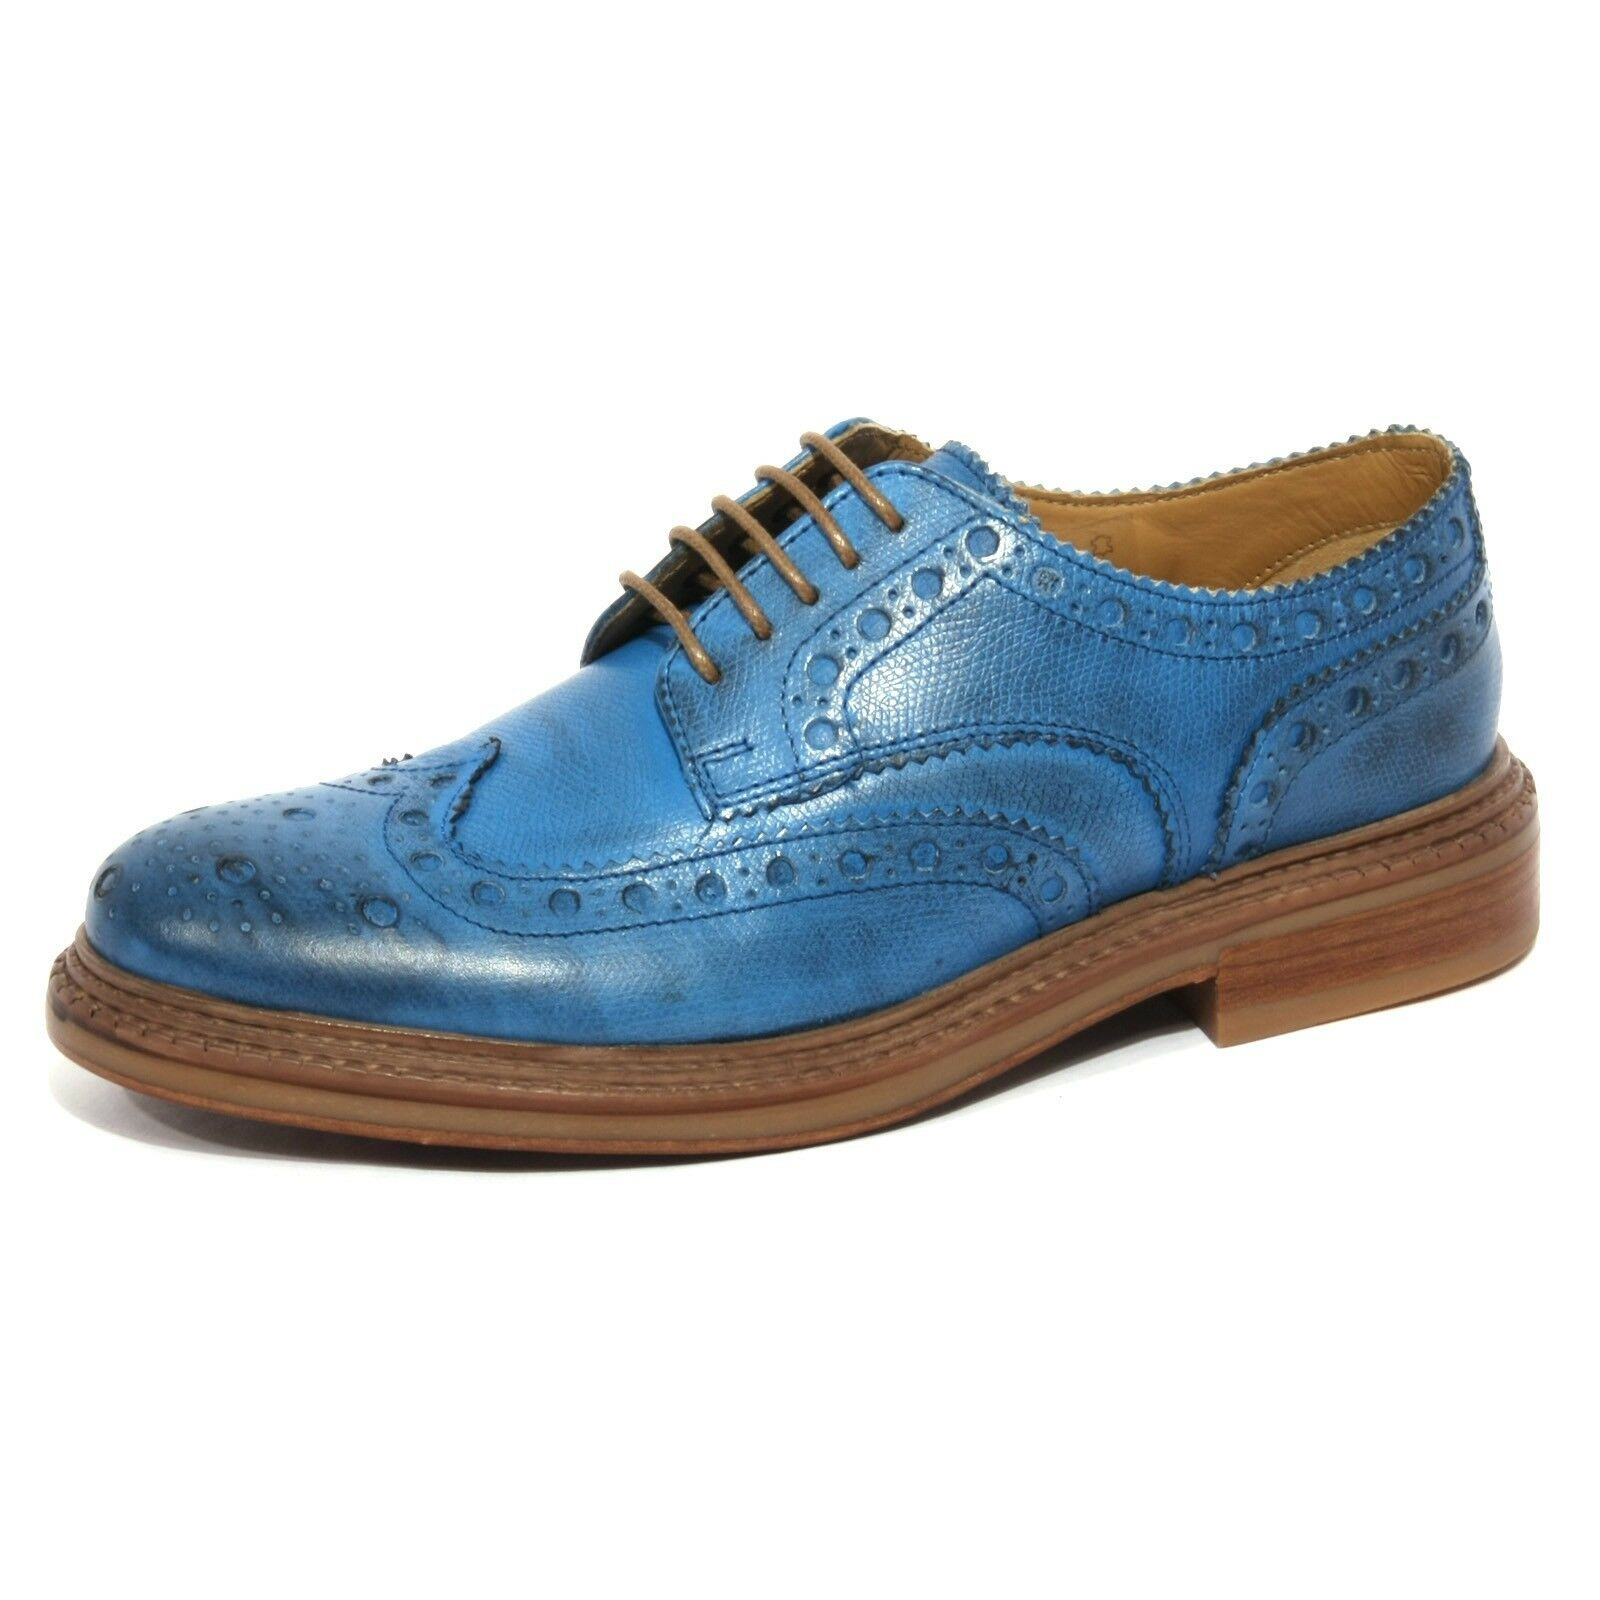 B1026 scarpa inglese BASE LONDON FARADAY vintage shoes Uomo